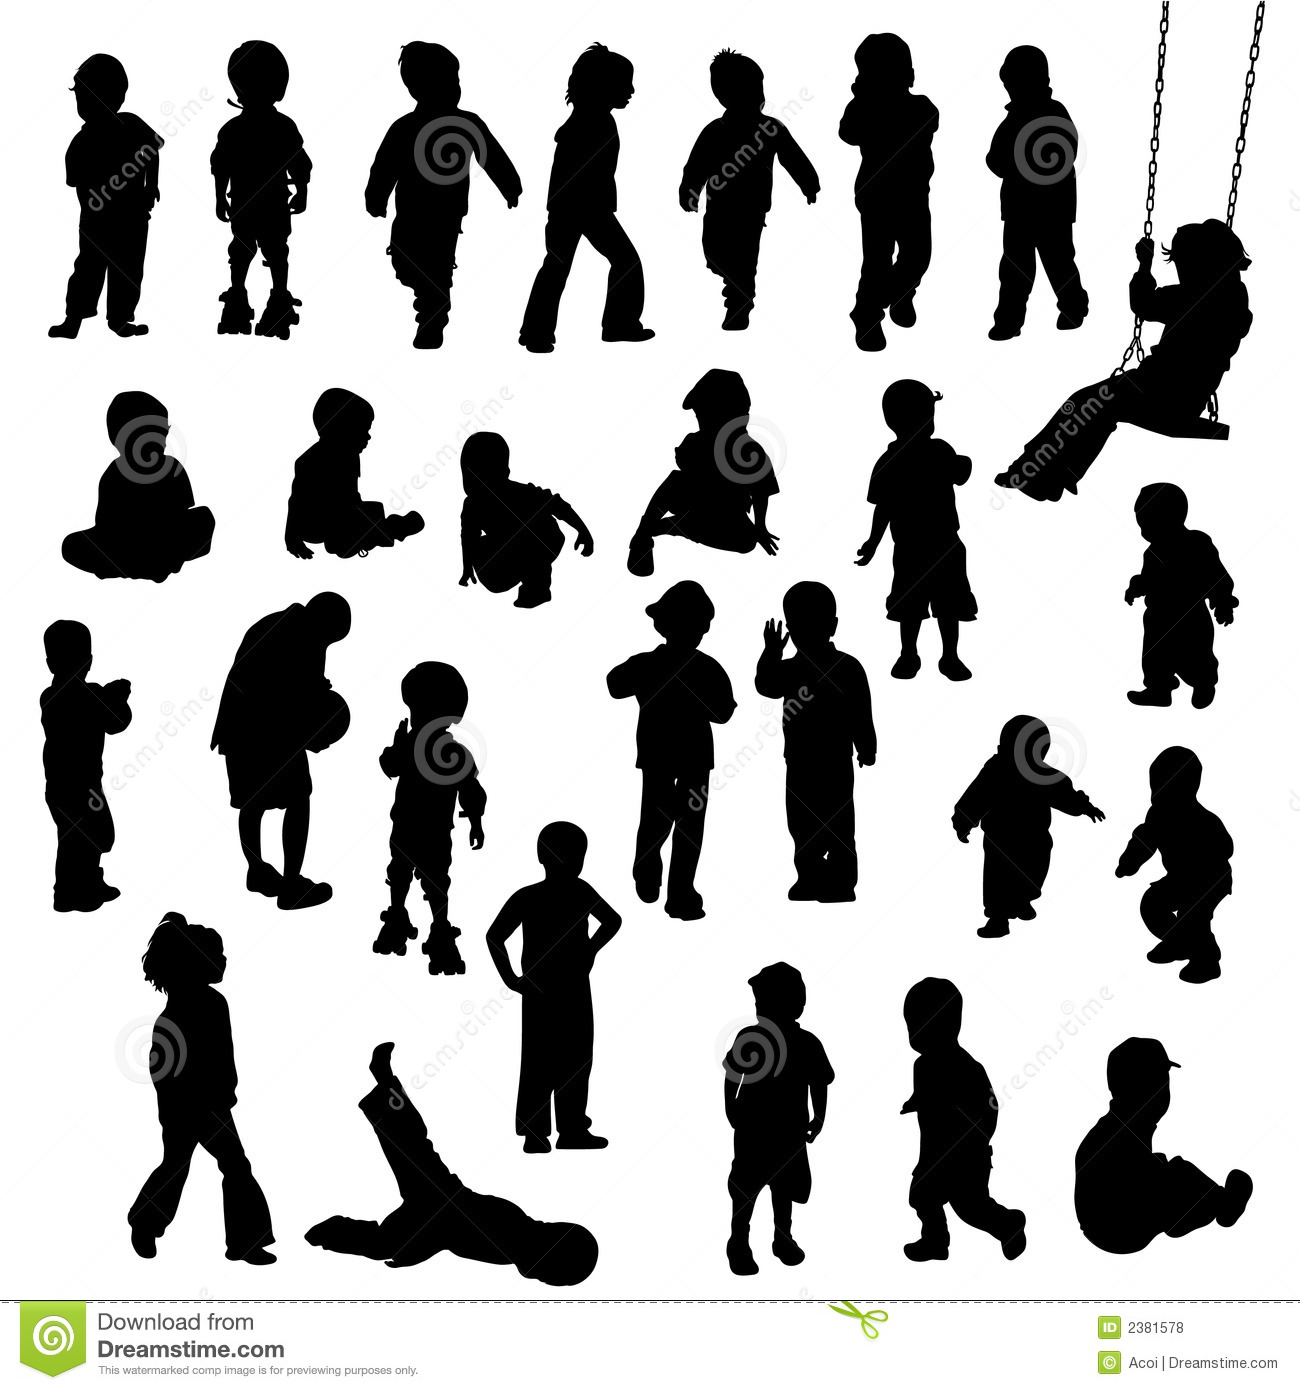 Children Silhouettes Stock Vector Illustration Of Crowd